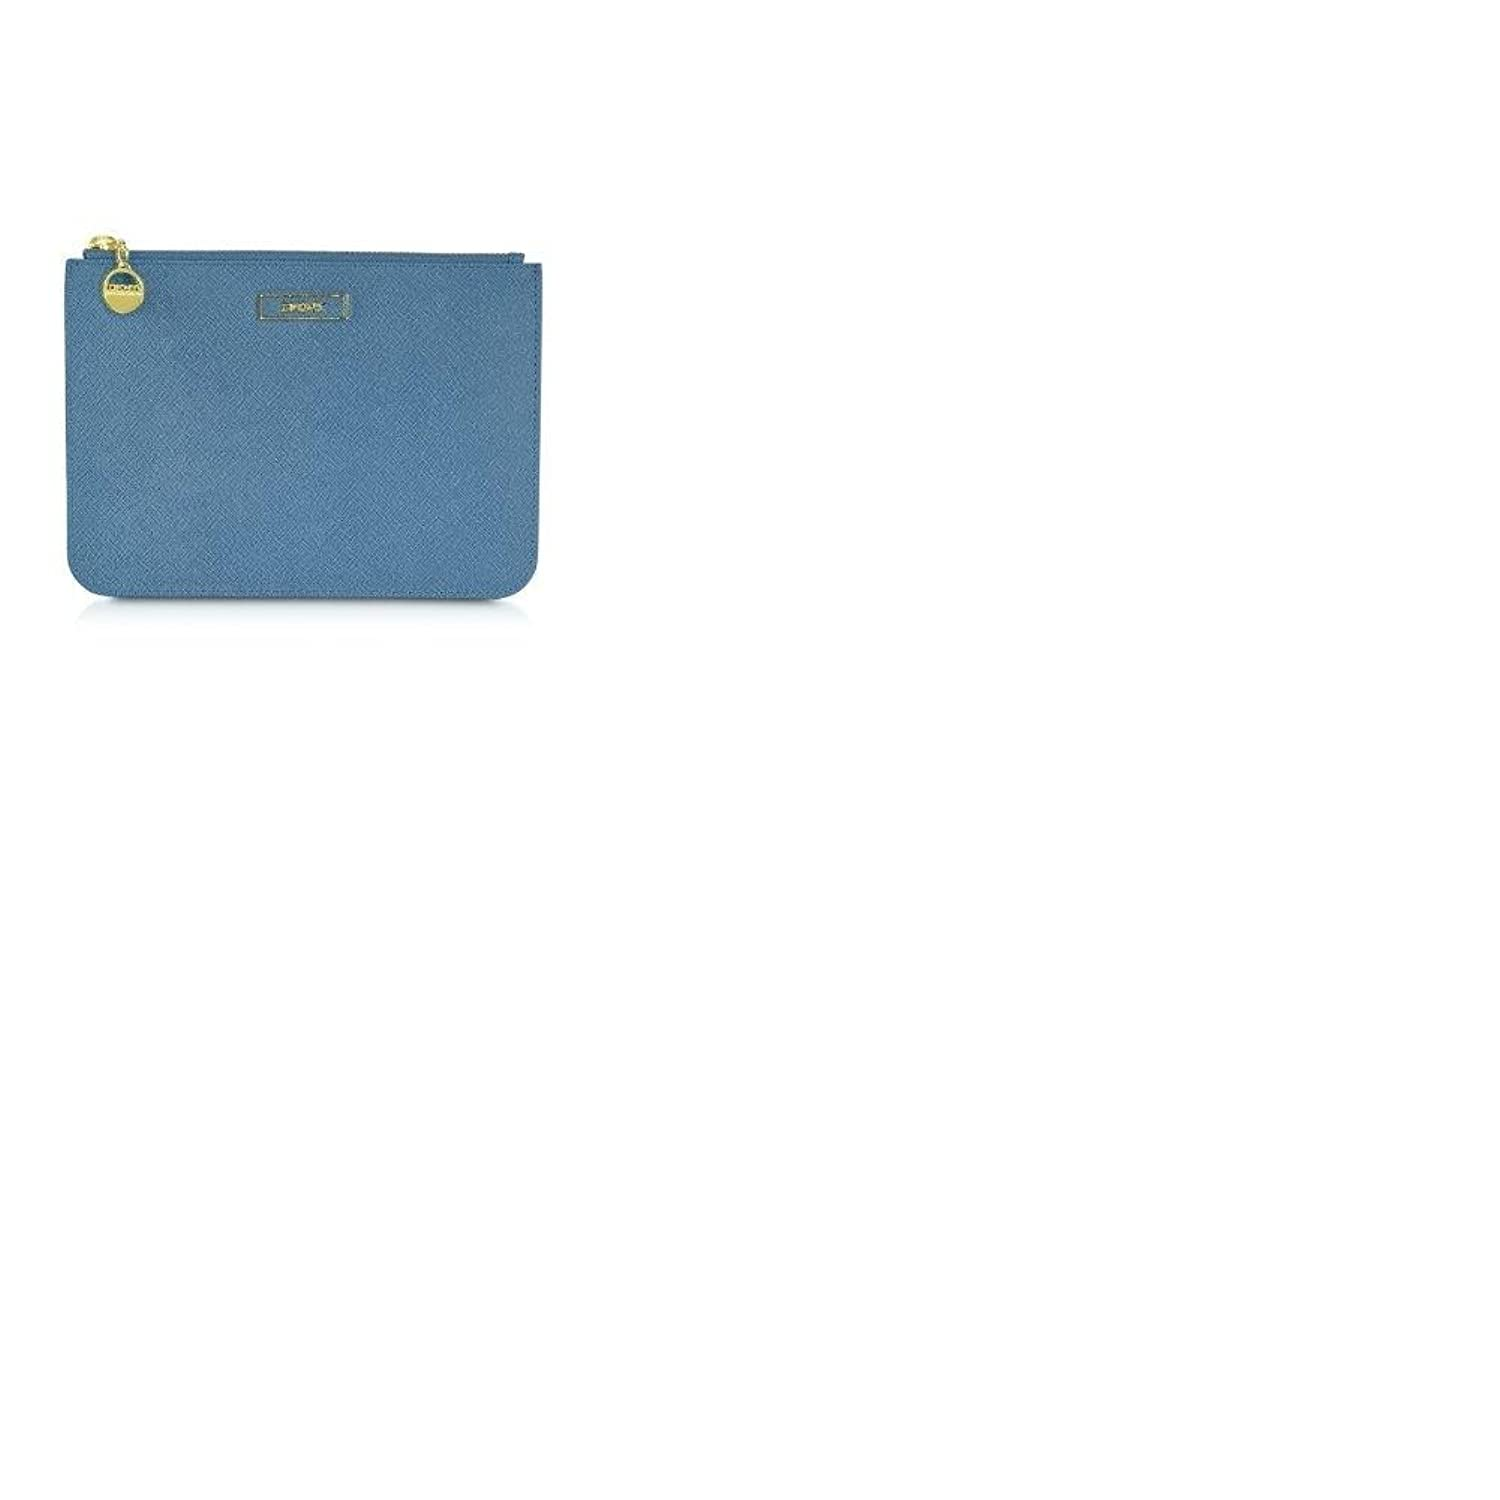 Dkny Saffiano Leather Large Clutch Blue